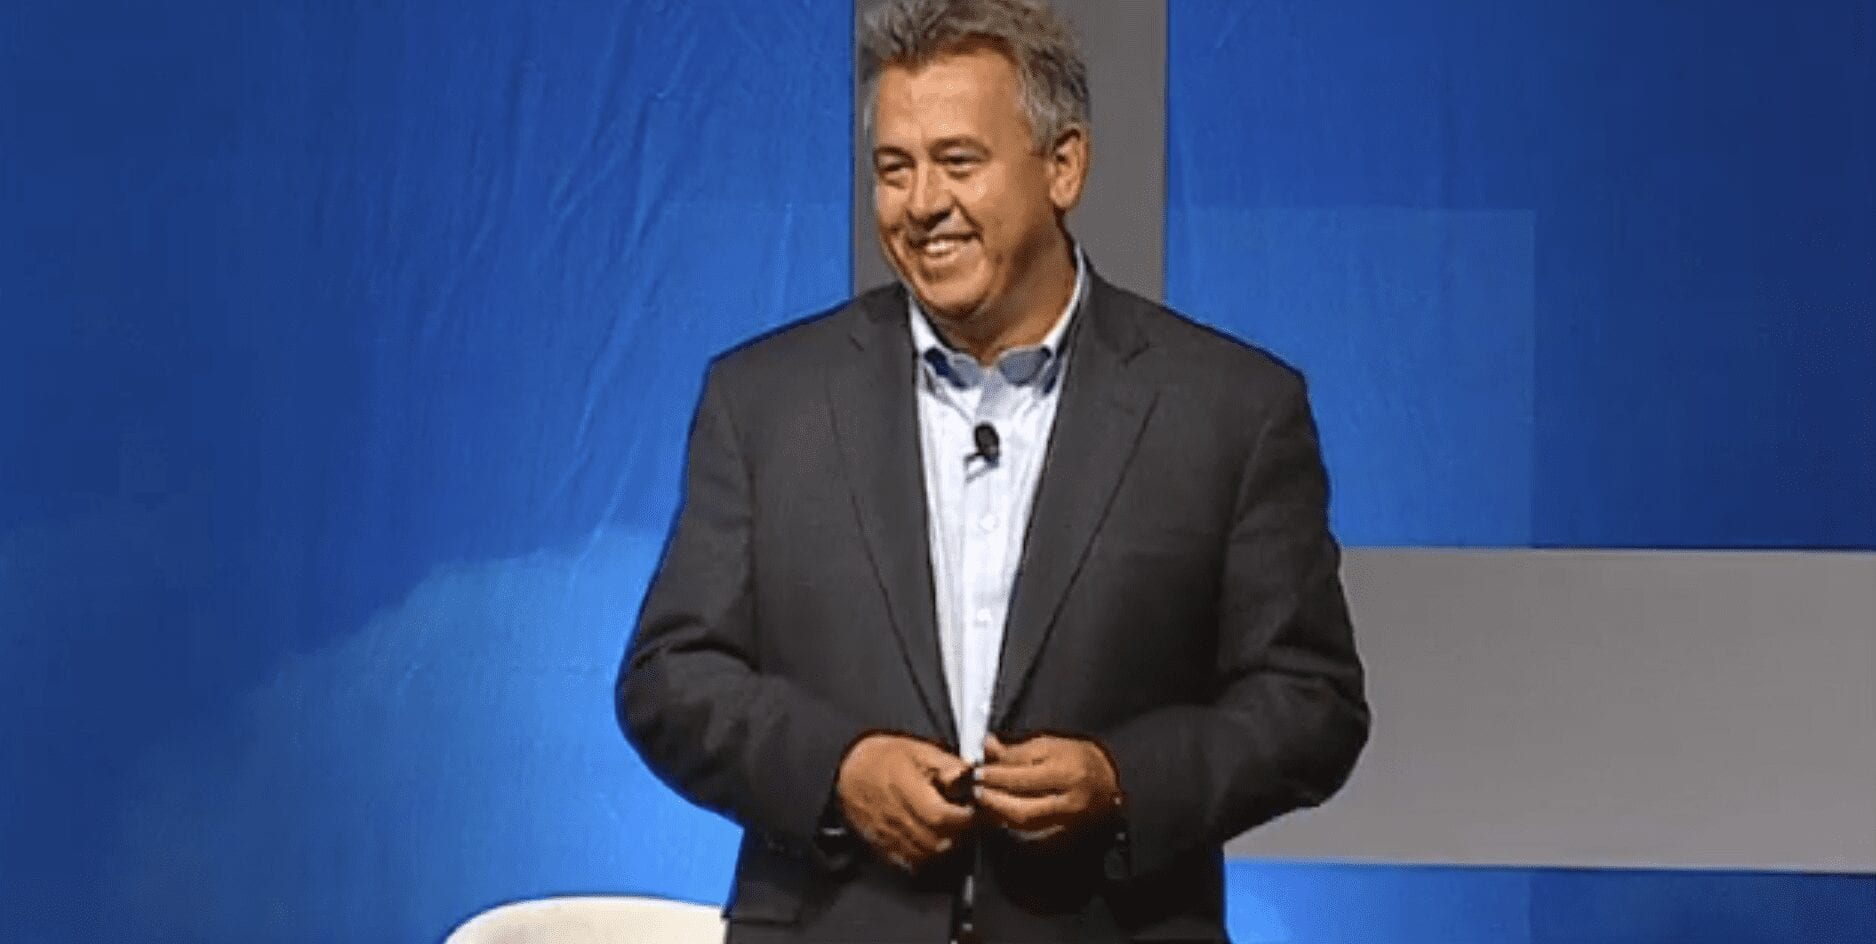 Image of Mark Sievewright at a speaking engagement